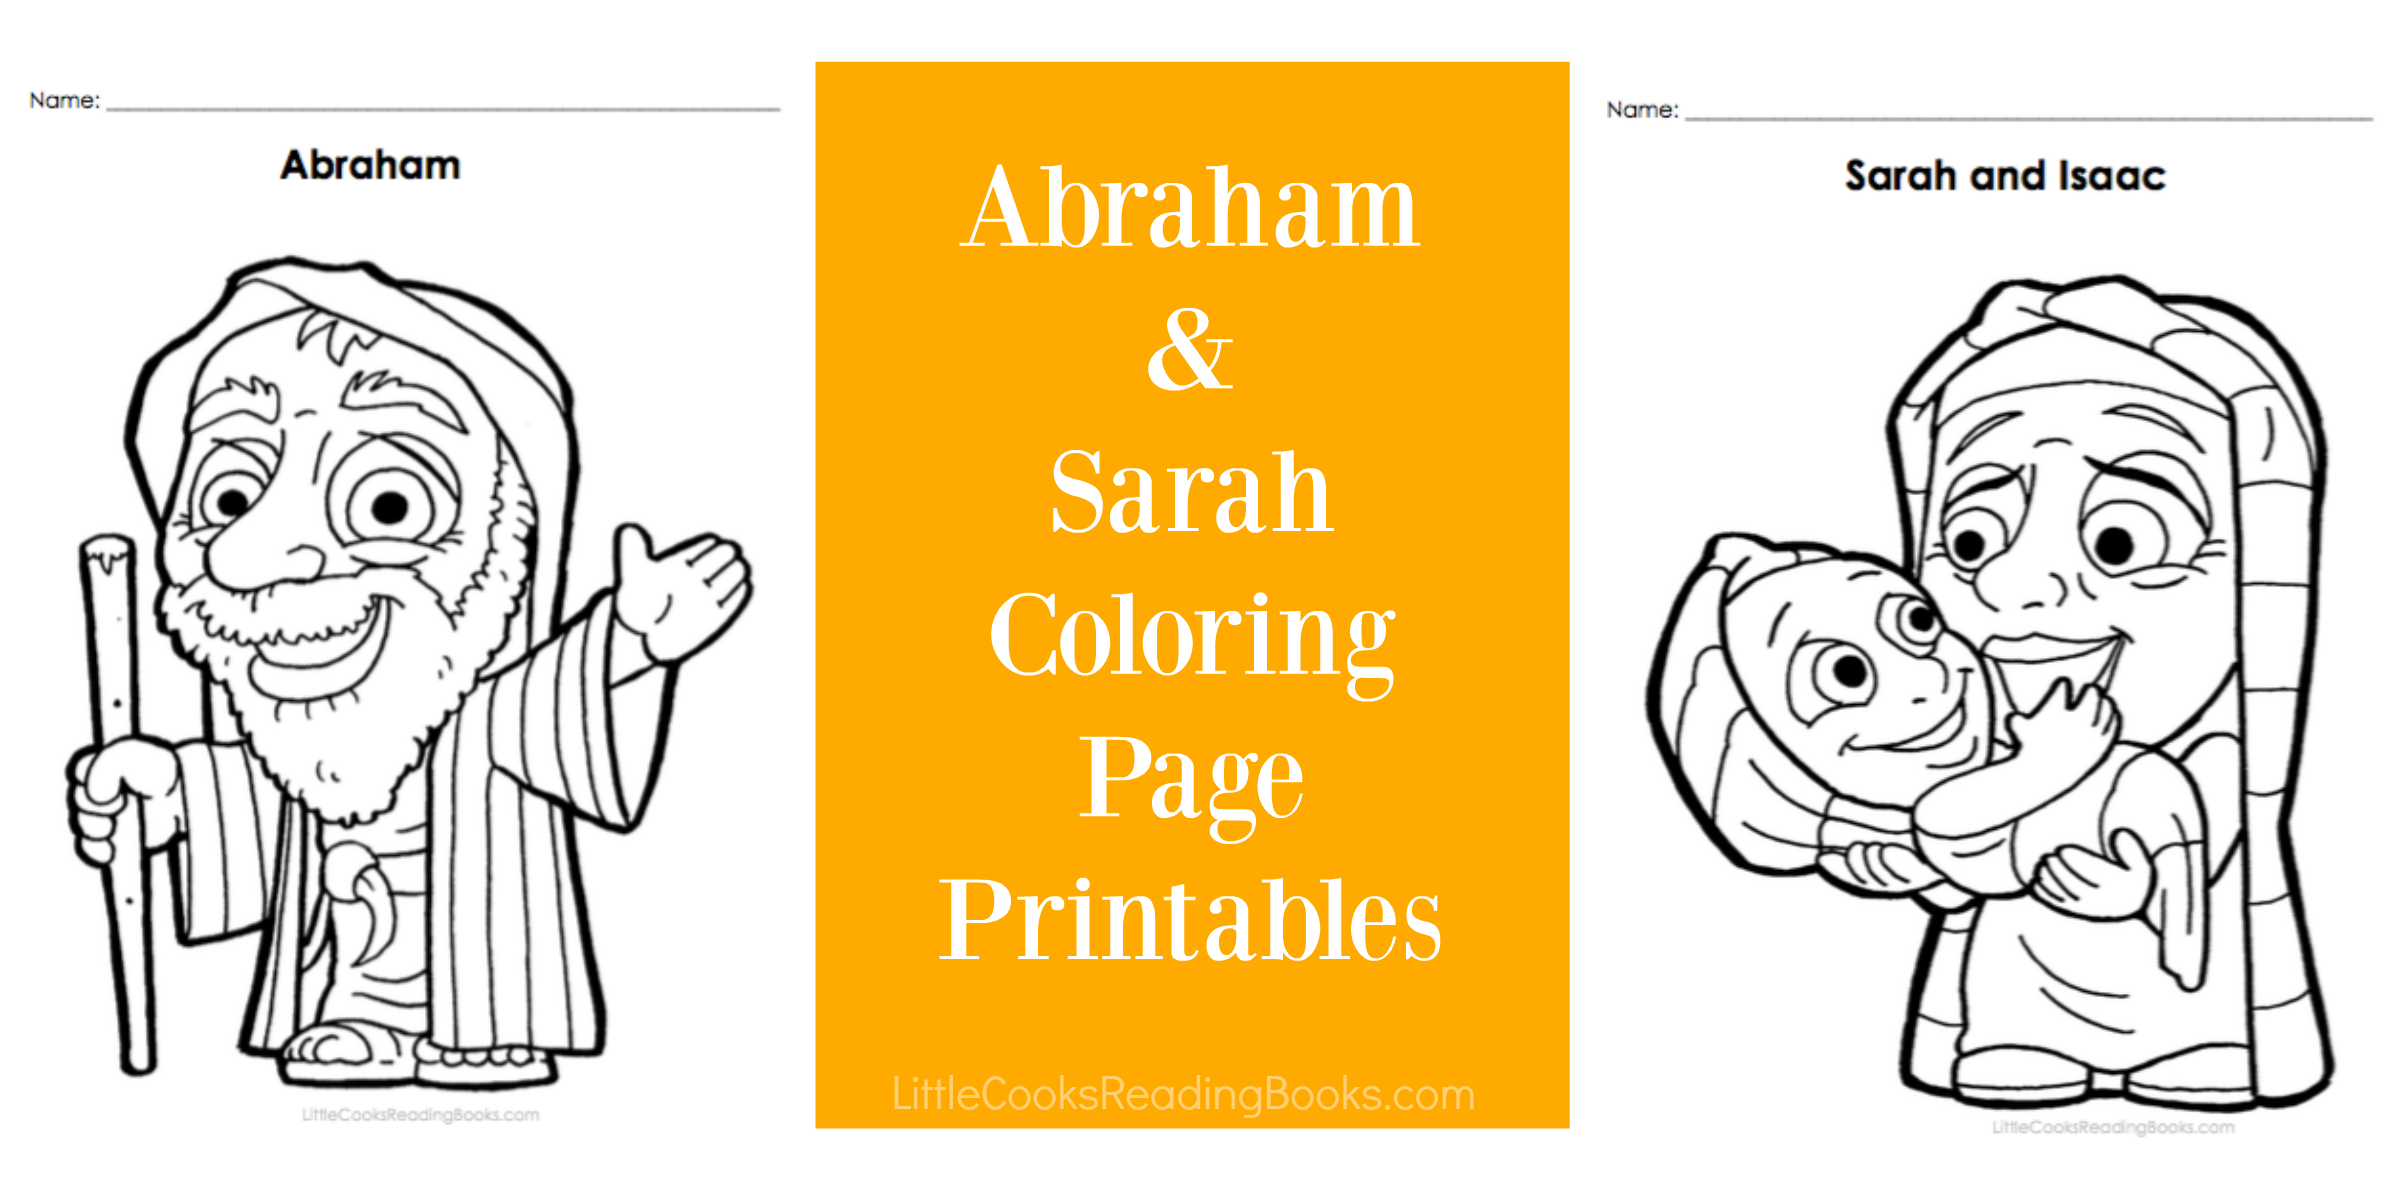 FREE Abraham And Sarah Coloring Pages | Little Cooks Reading Books ...